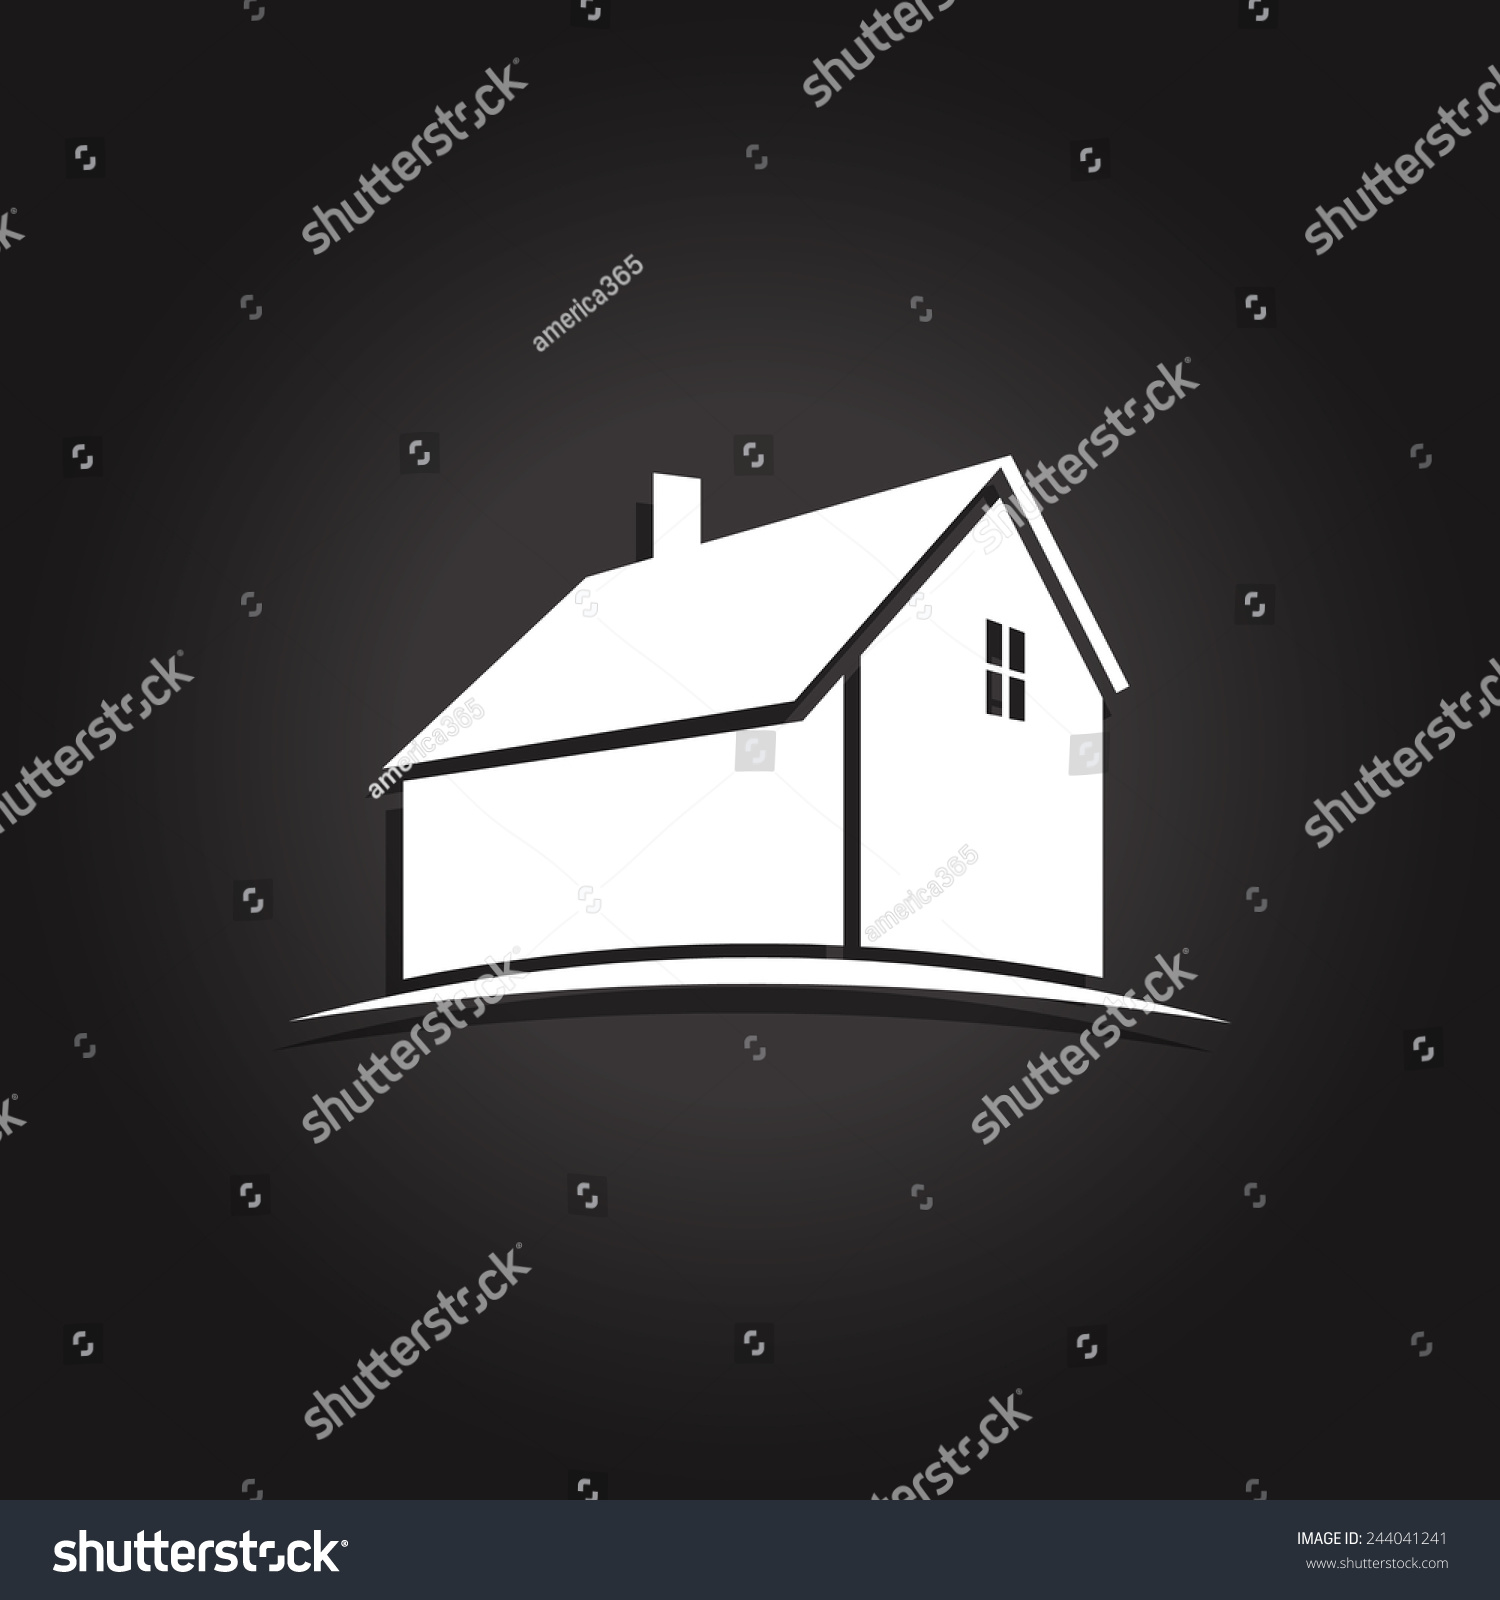 Simple House Icon. Vector Icon - 244041241 : Shutterstock